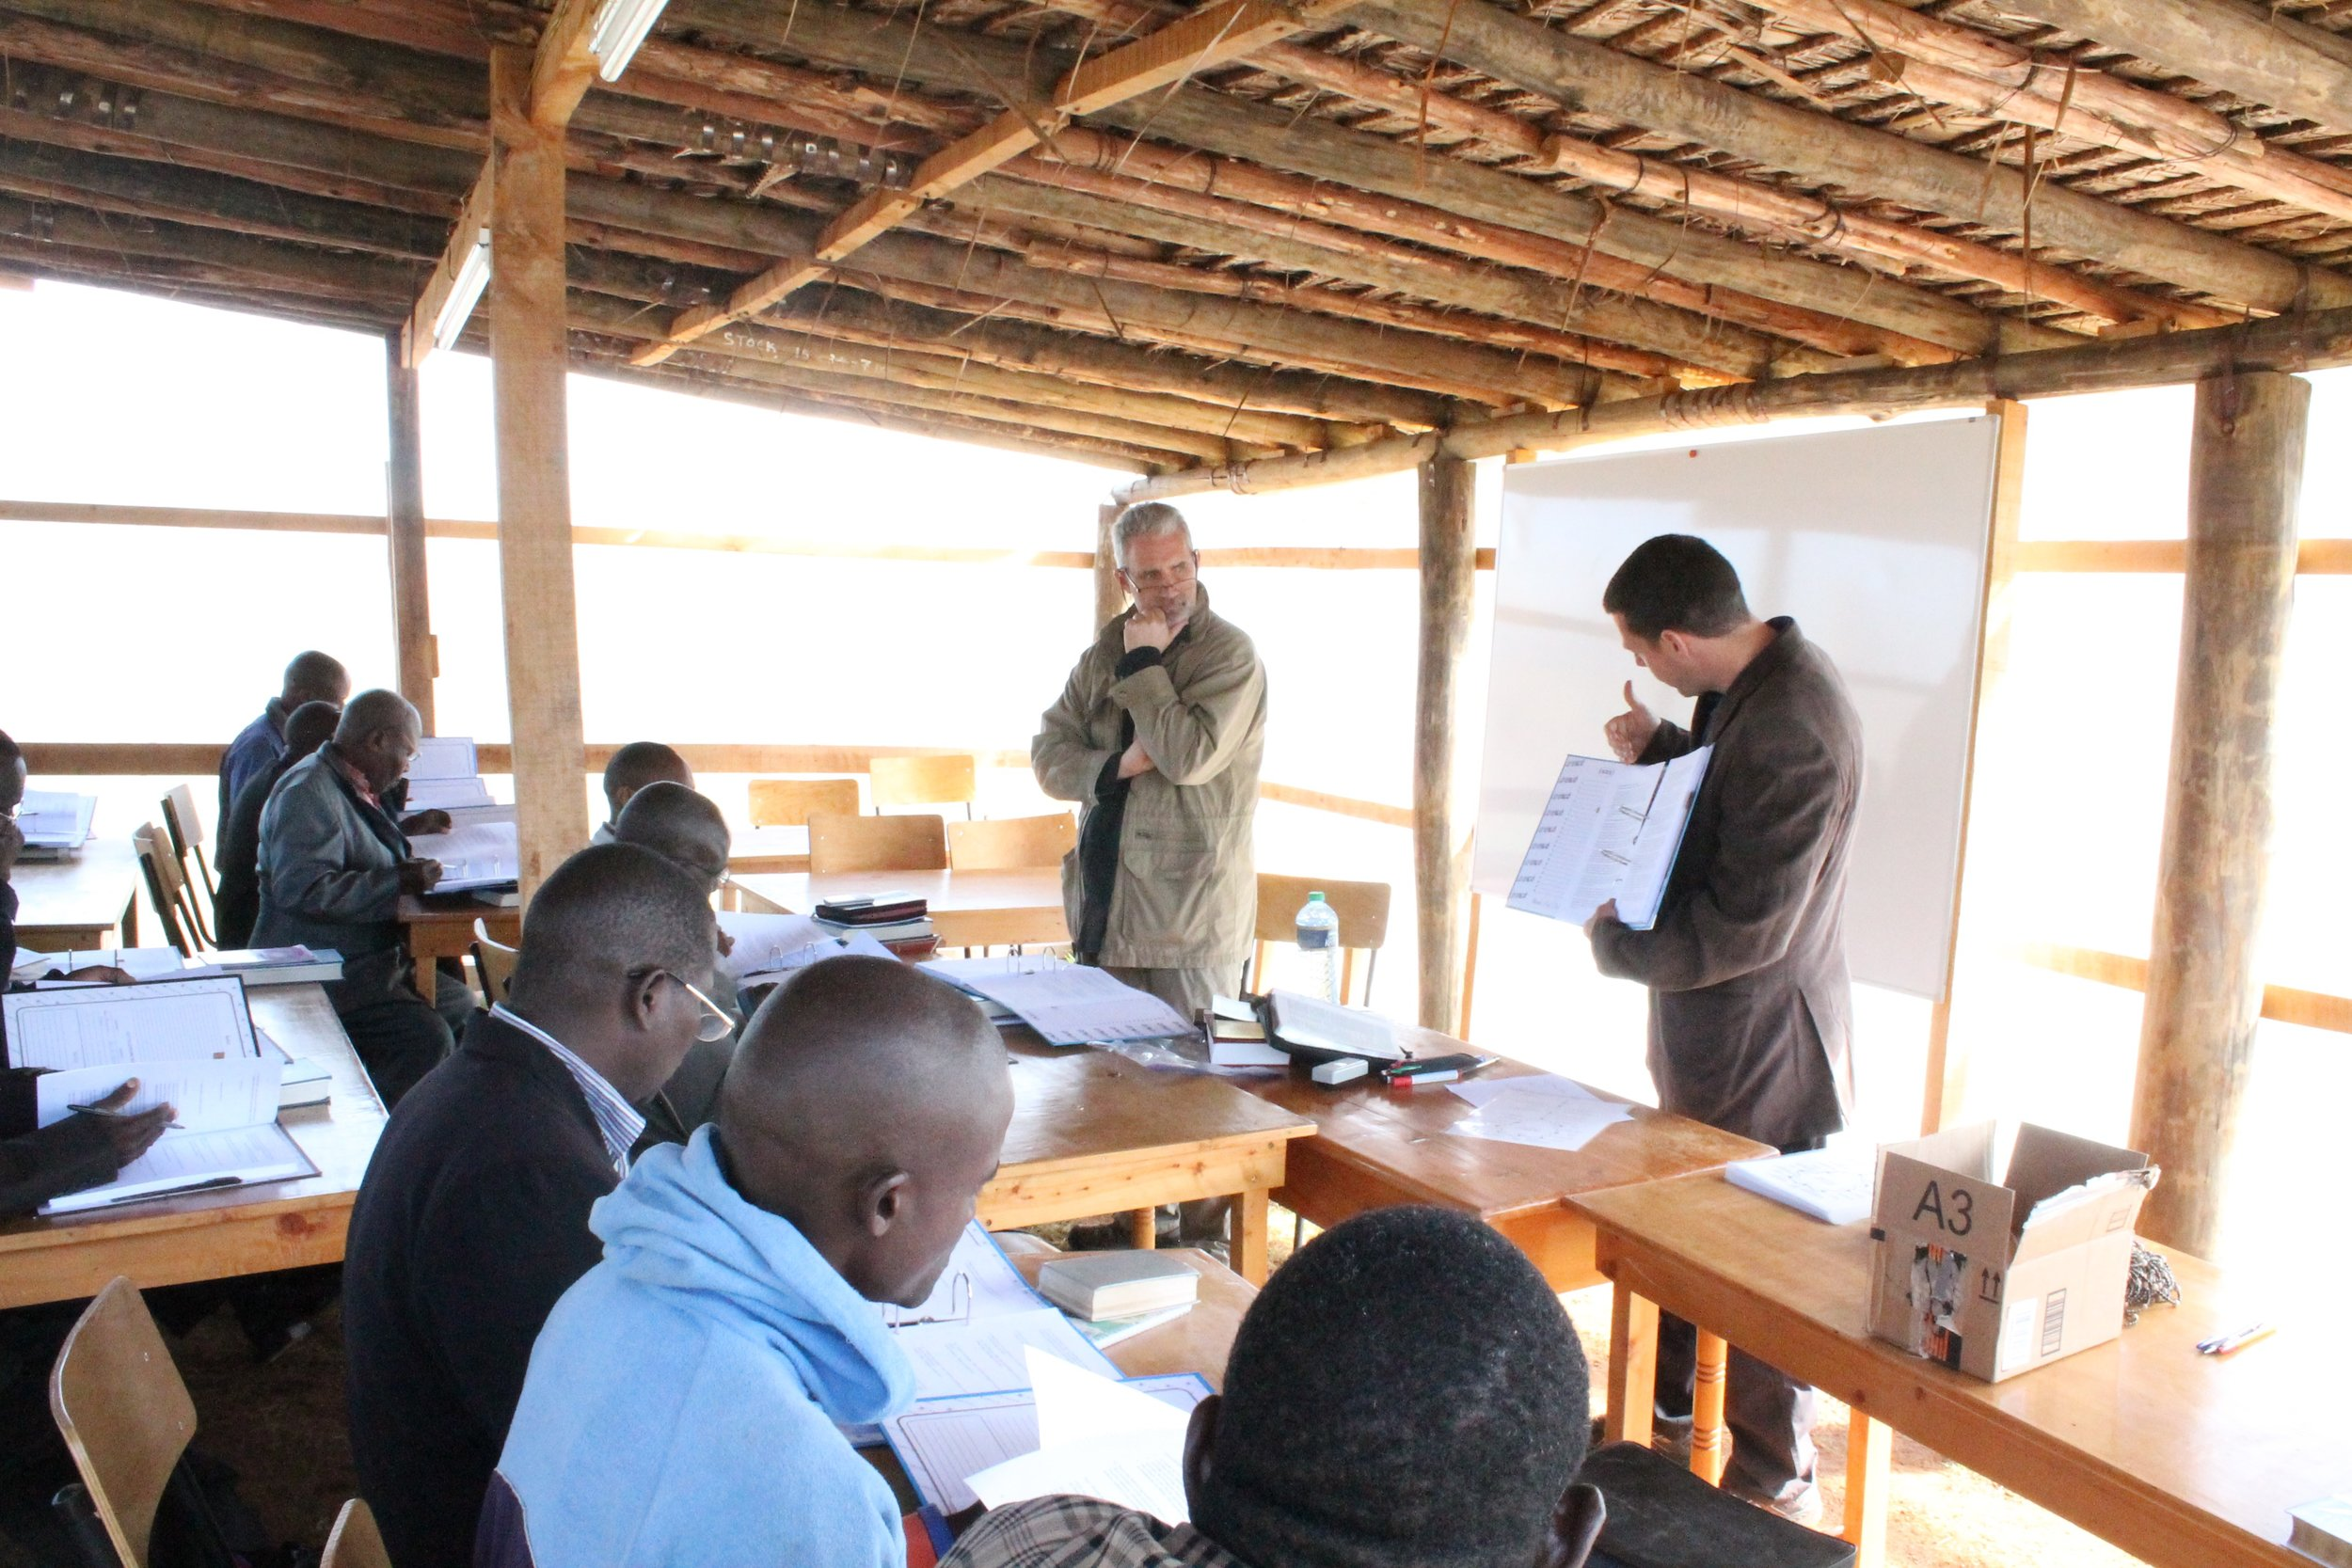 Occasionally, Pastor May would speak in Swahili to reinforce the teaching